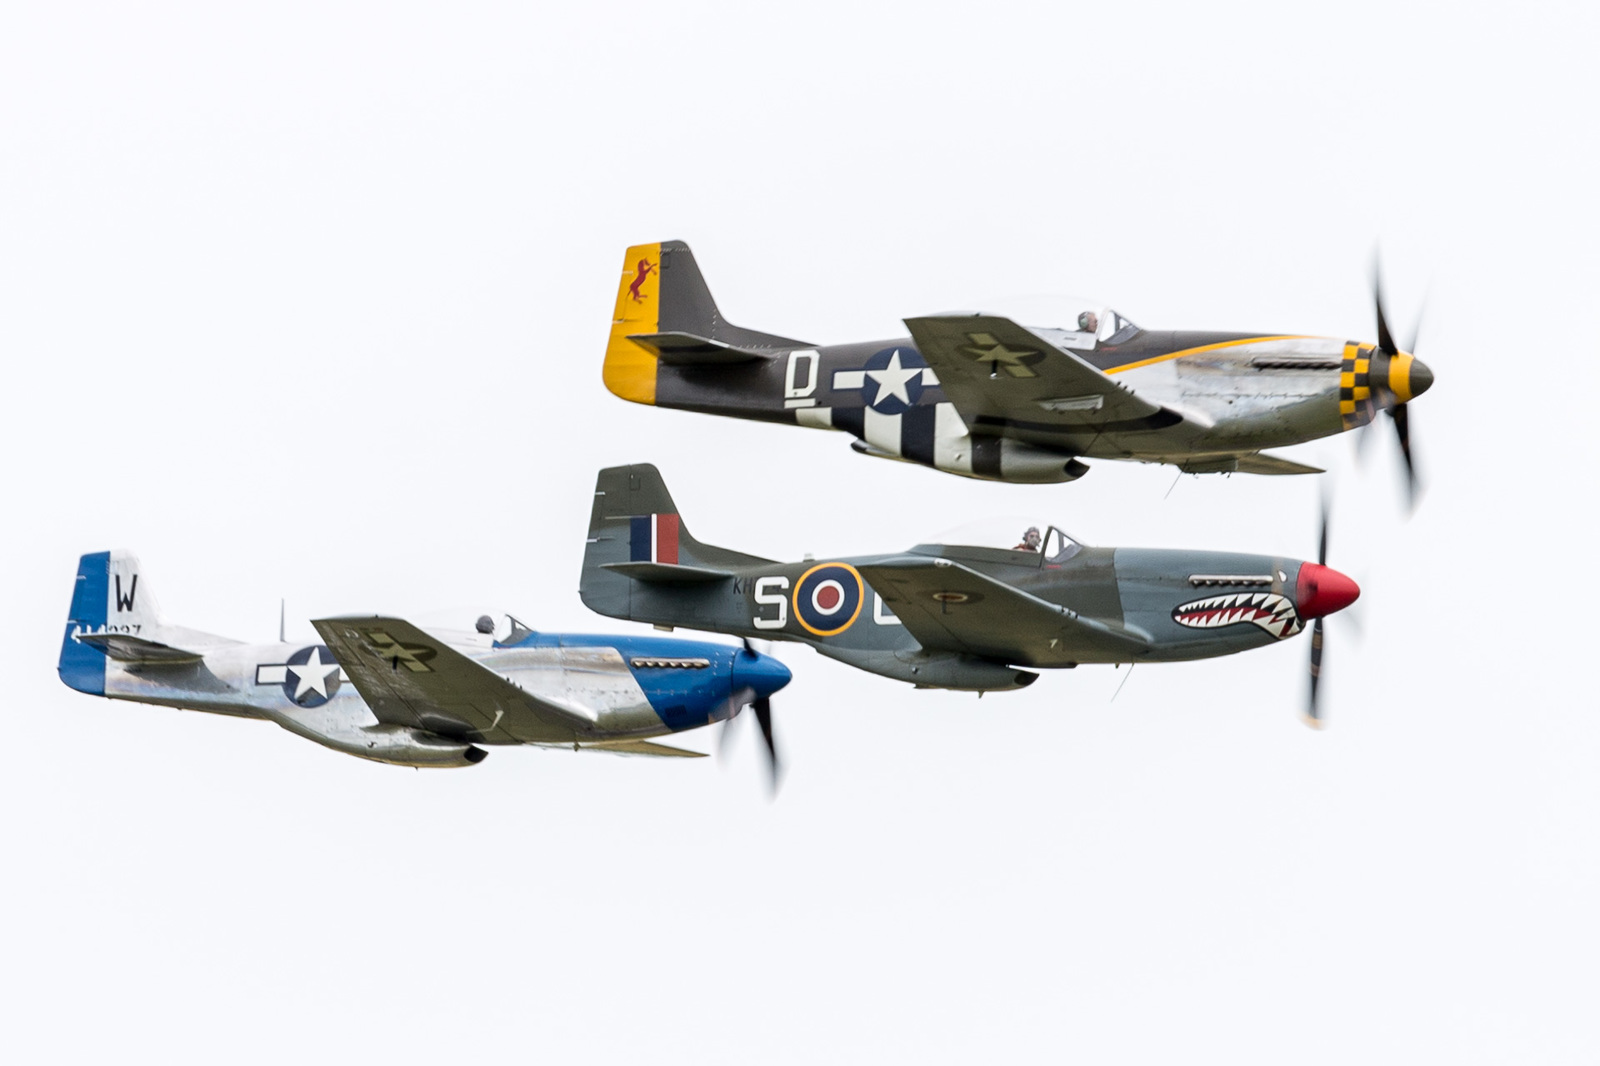 large.58da95dba8af6_DuxfordFlyingLegends